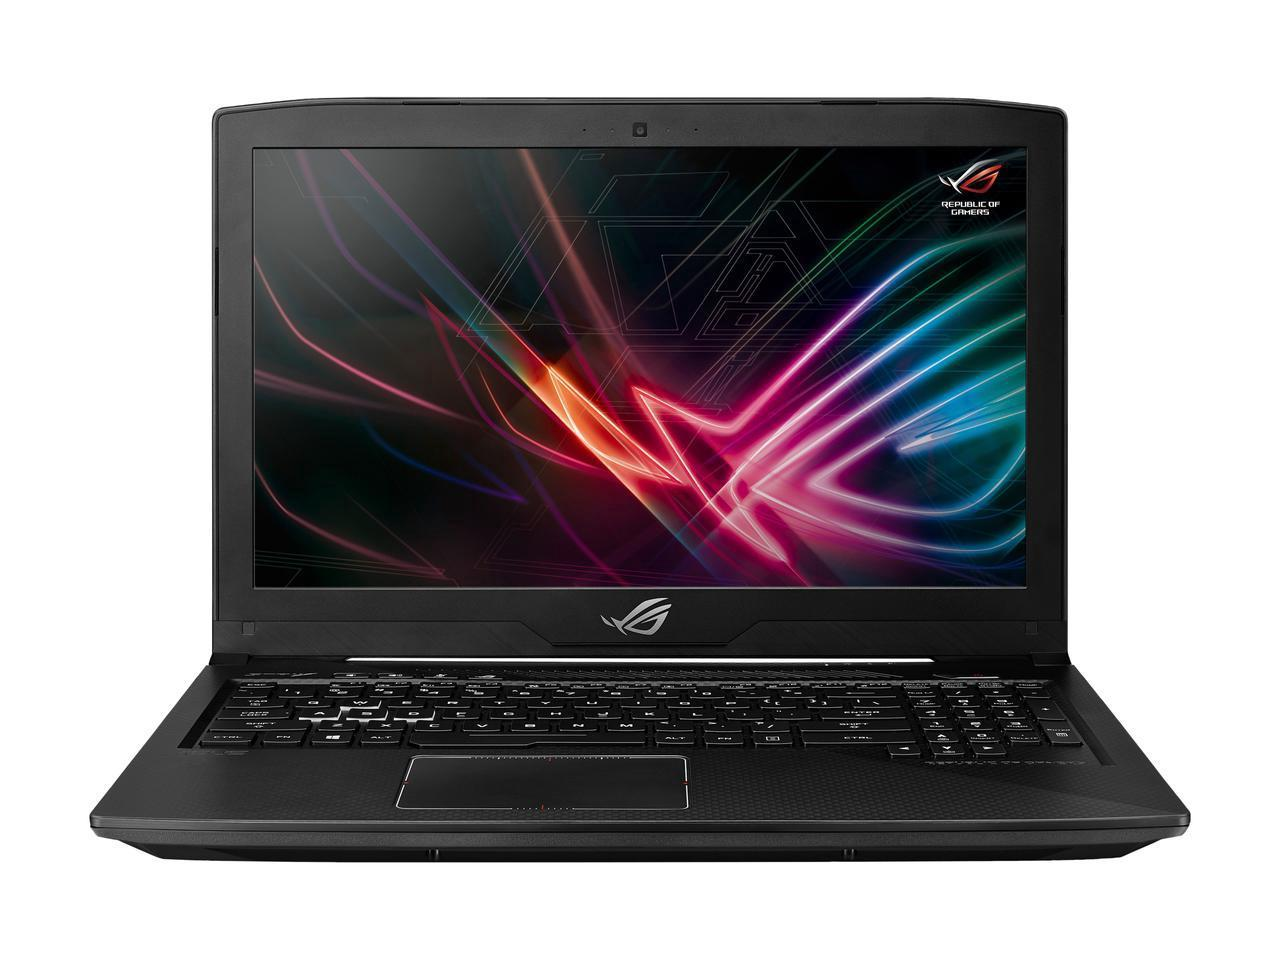 "Asus 15.6"" FHD Gaming Laptop (i7-7700HQ / 8GB / 1TB HDD & 128GB SSD)"